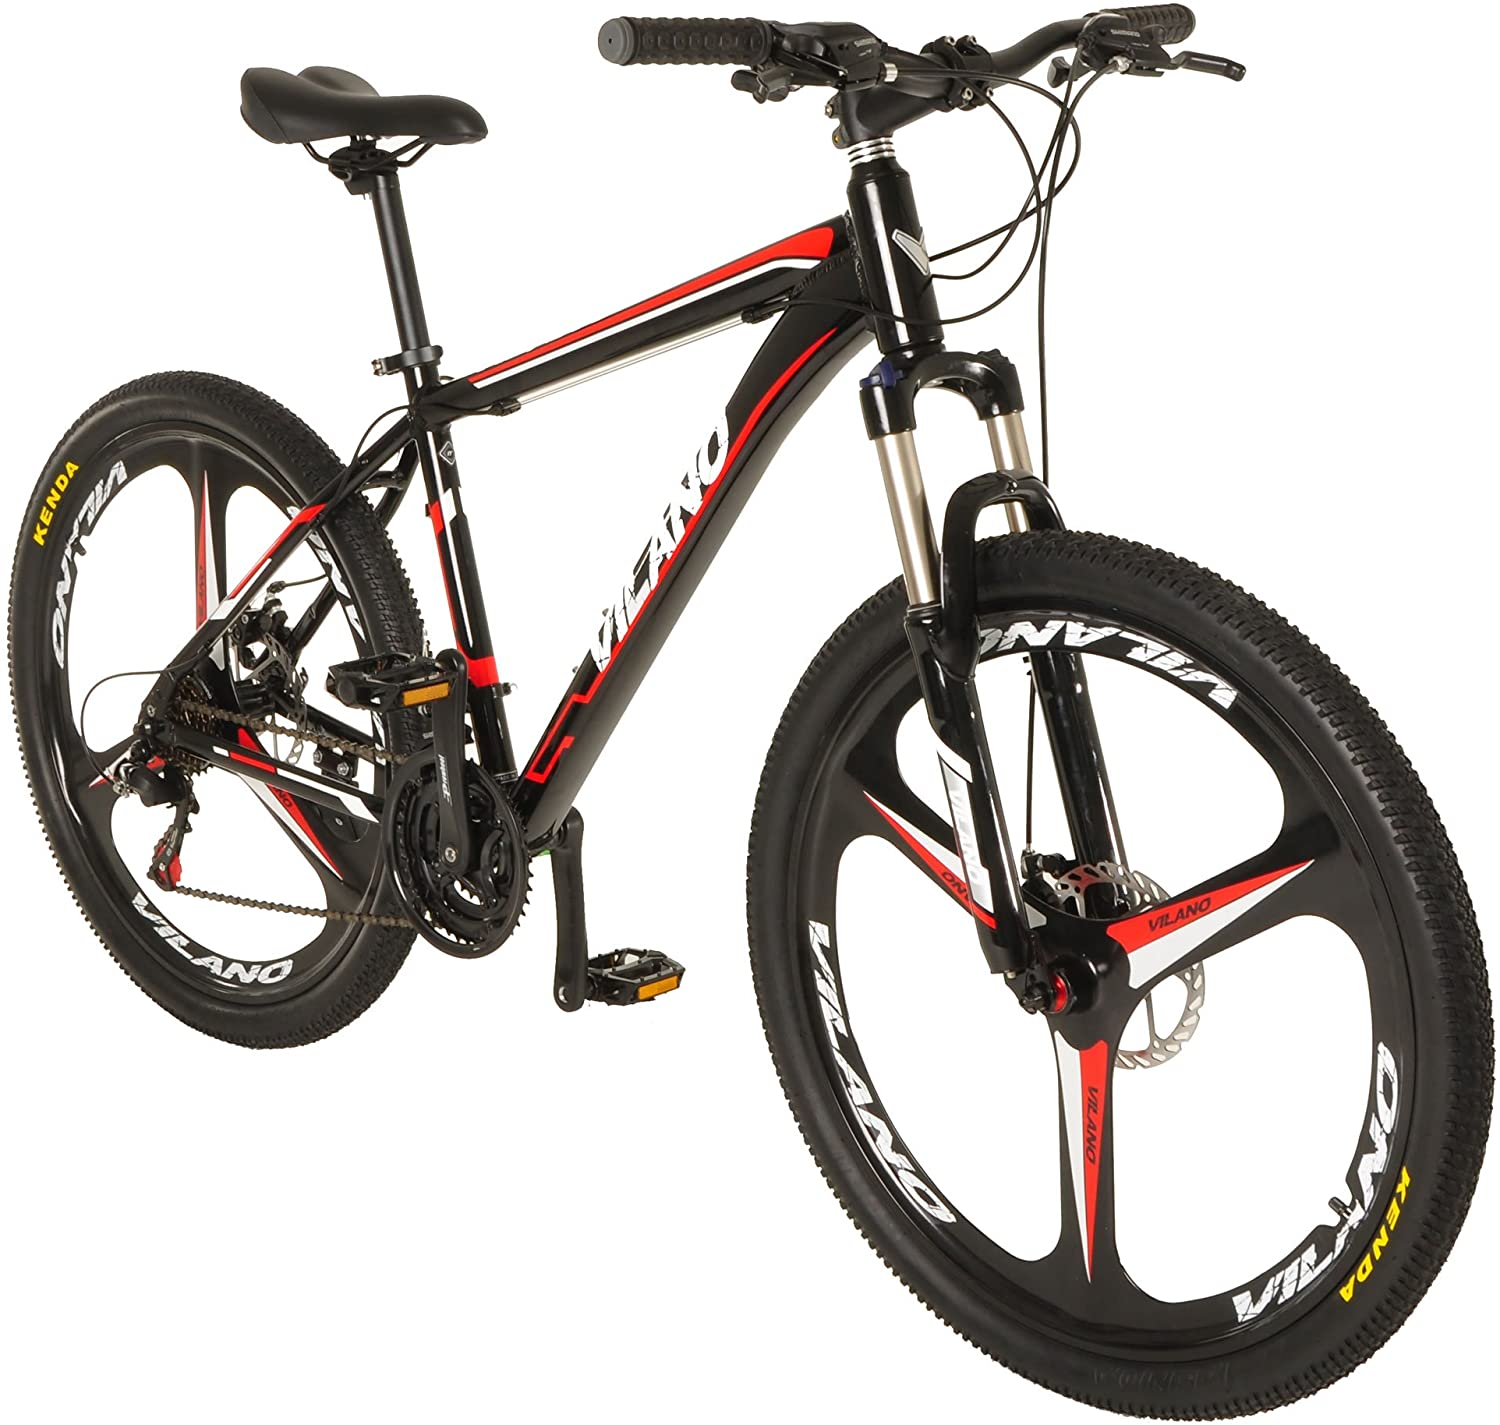 Best Mountain Bikes under $300 Reviews 2021 16